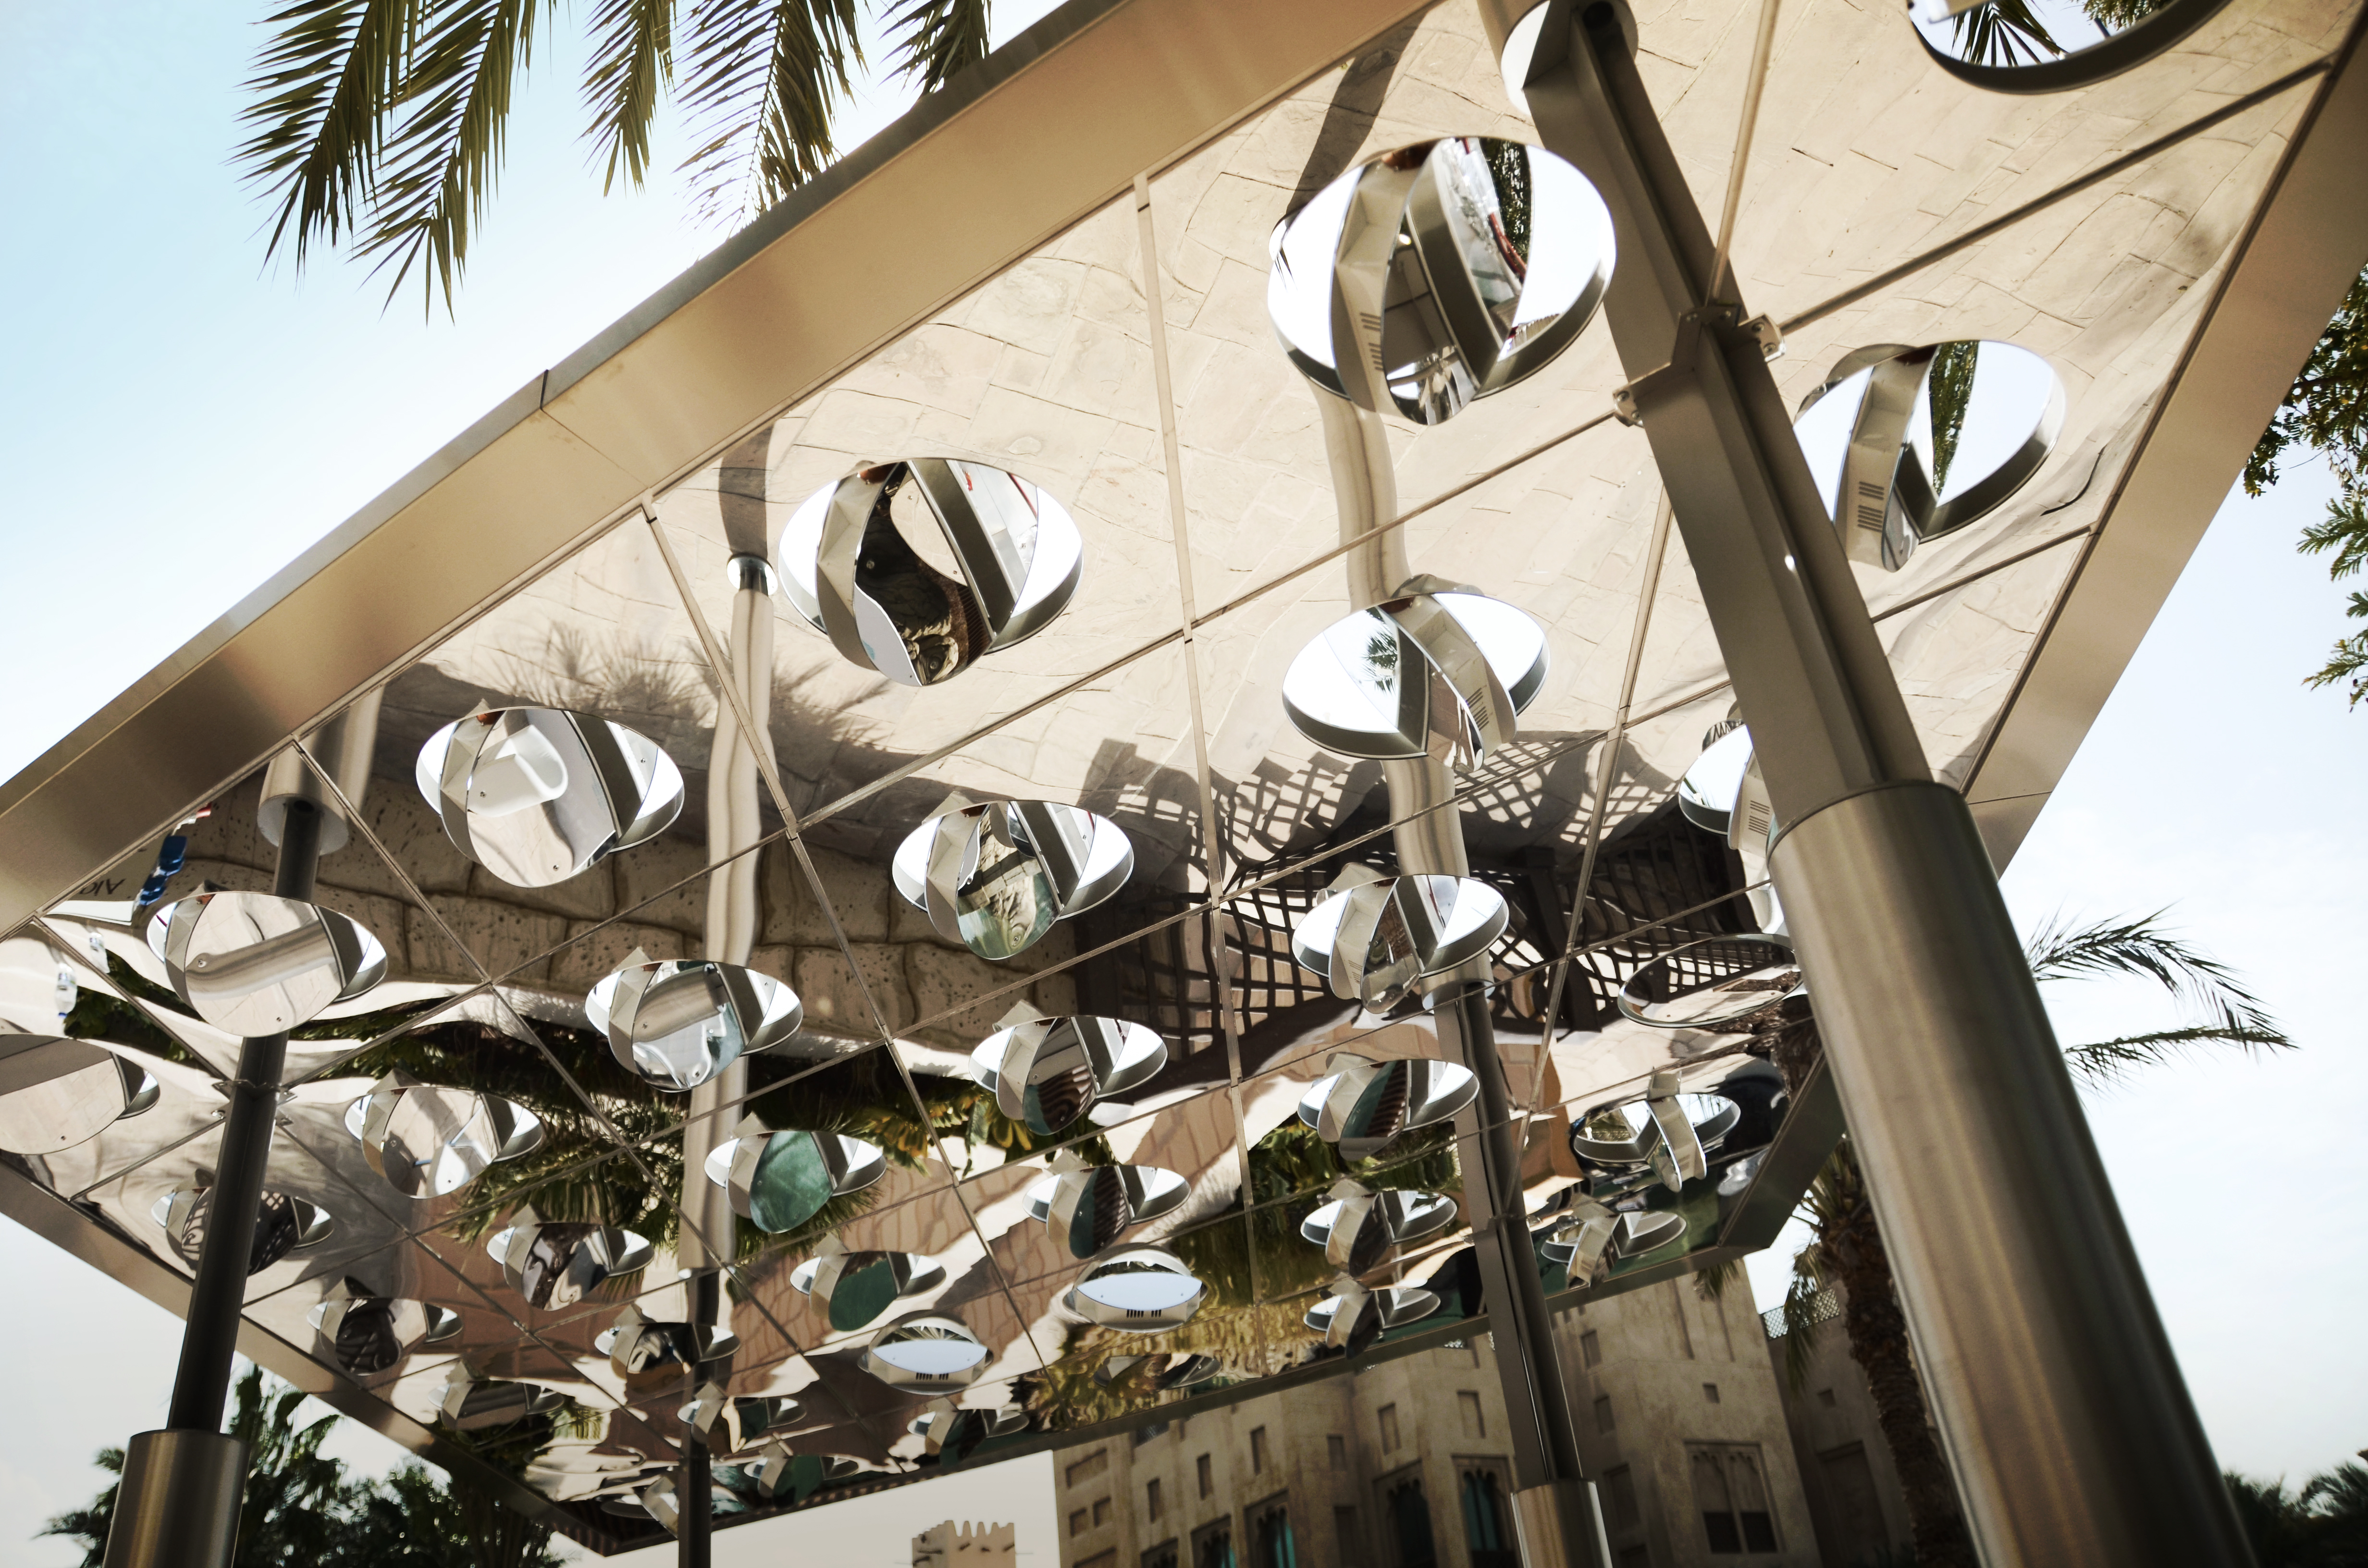 High-tech canopy helps generate solar power while providing shade